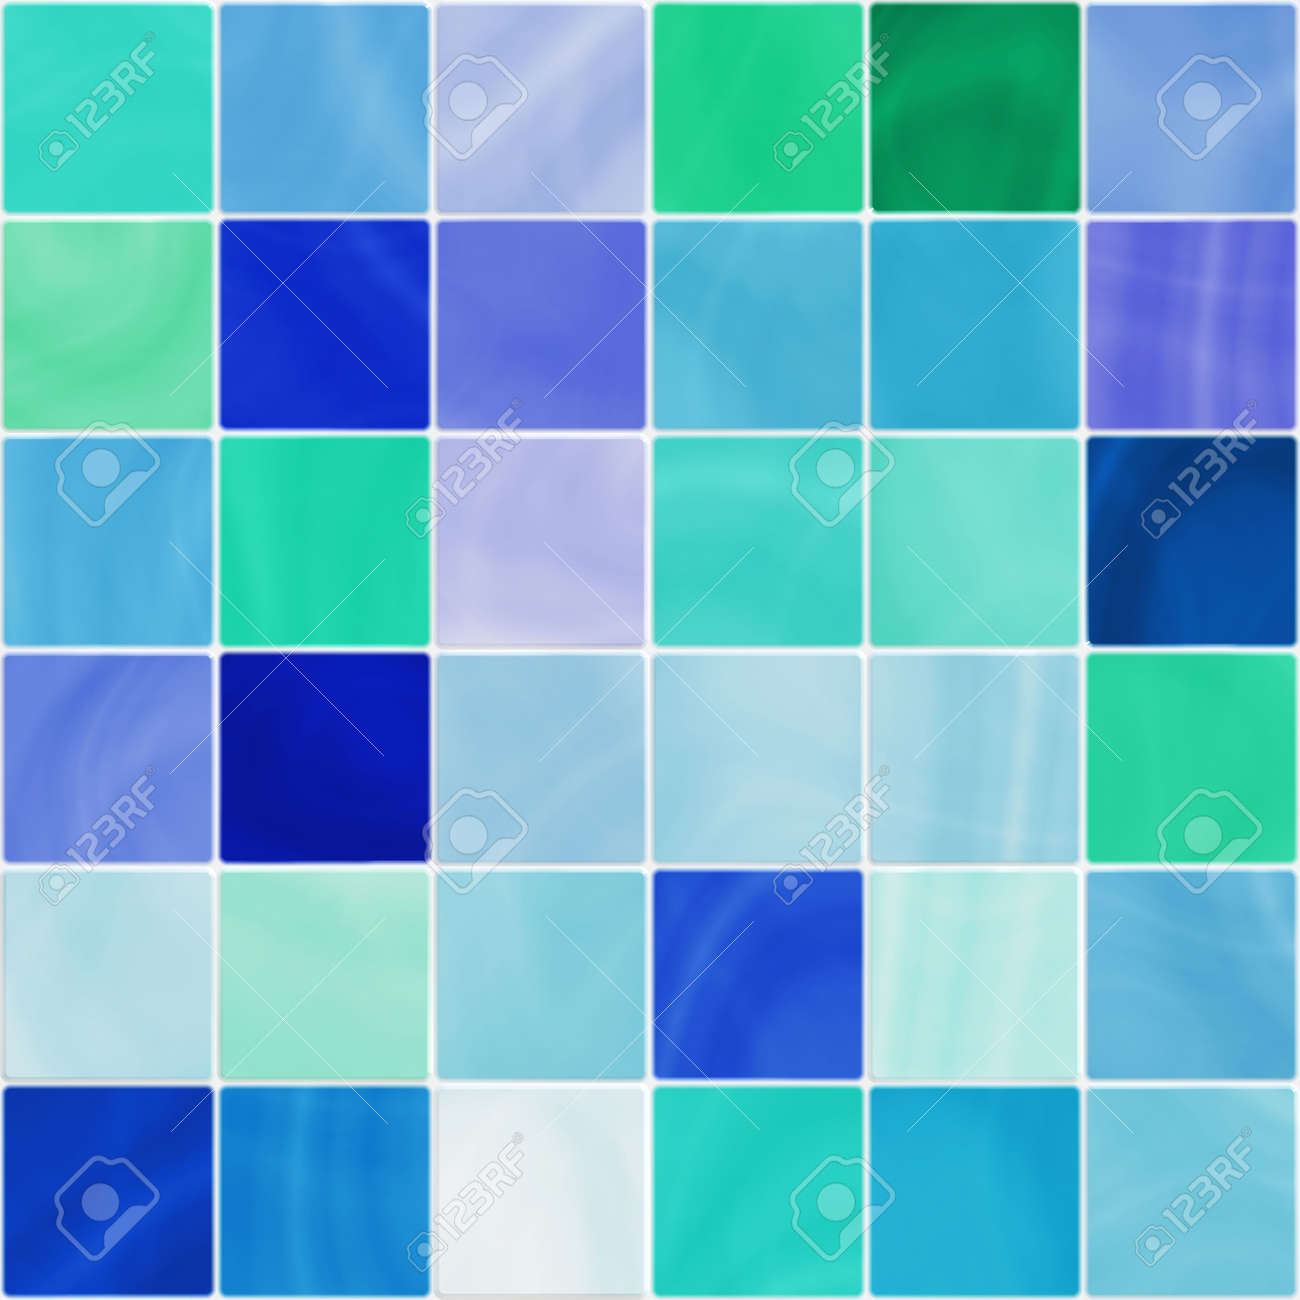 Ceramic Bathroom Or Kitchen Tiles In White, Blue And Green Tones ...